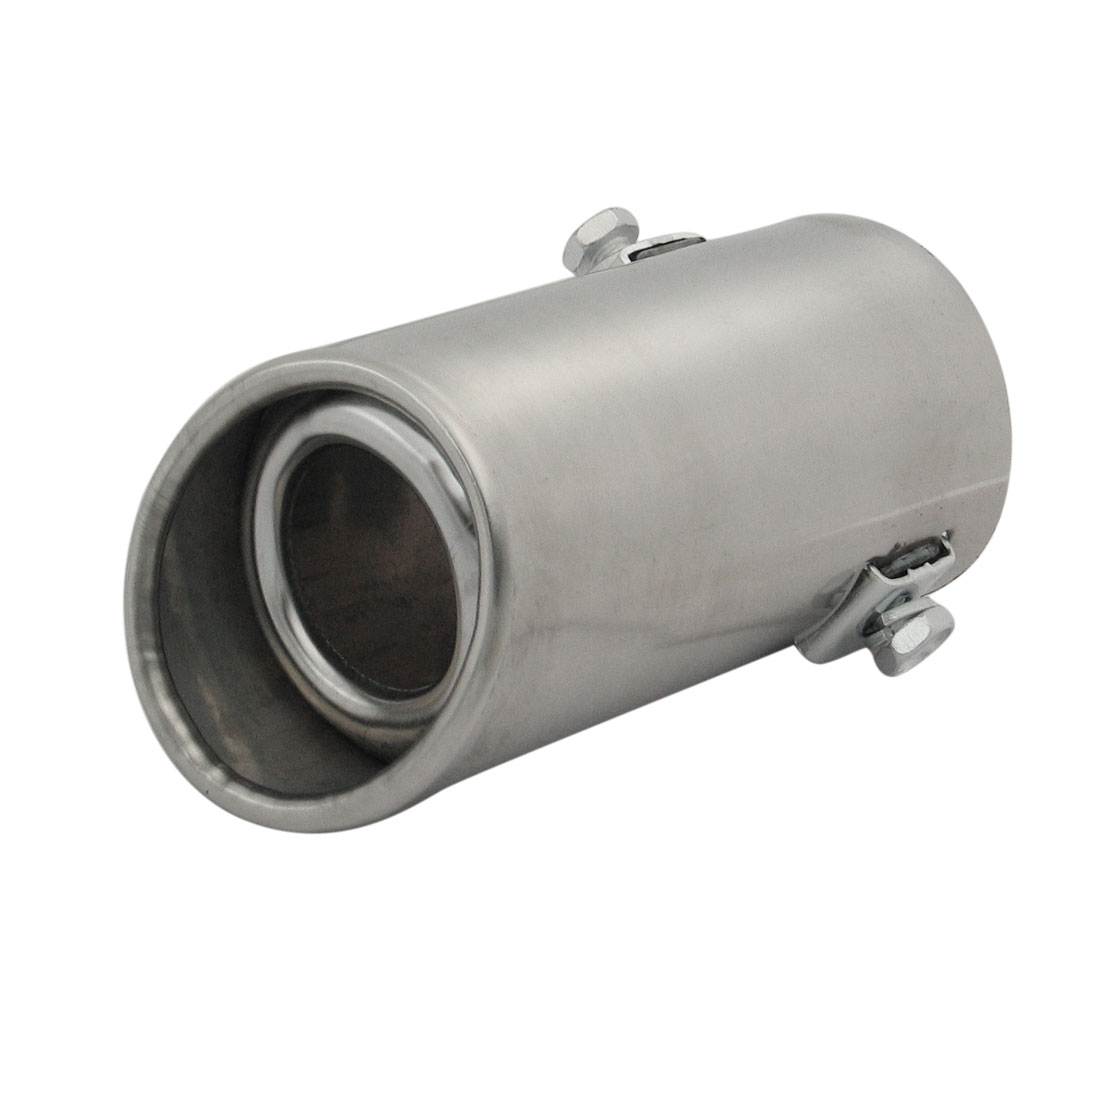 Universal Car Auto Stainless Steel Muffler Silencer Silver Tone